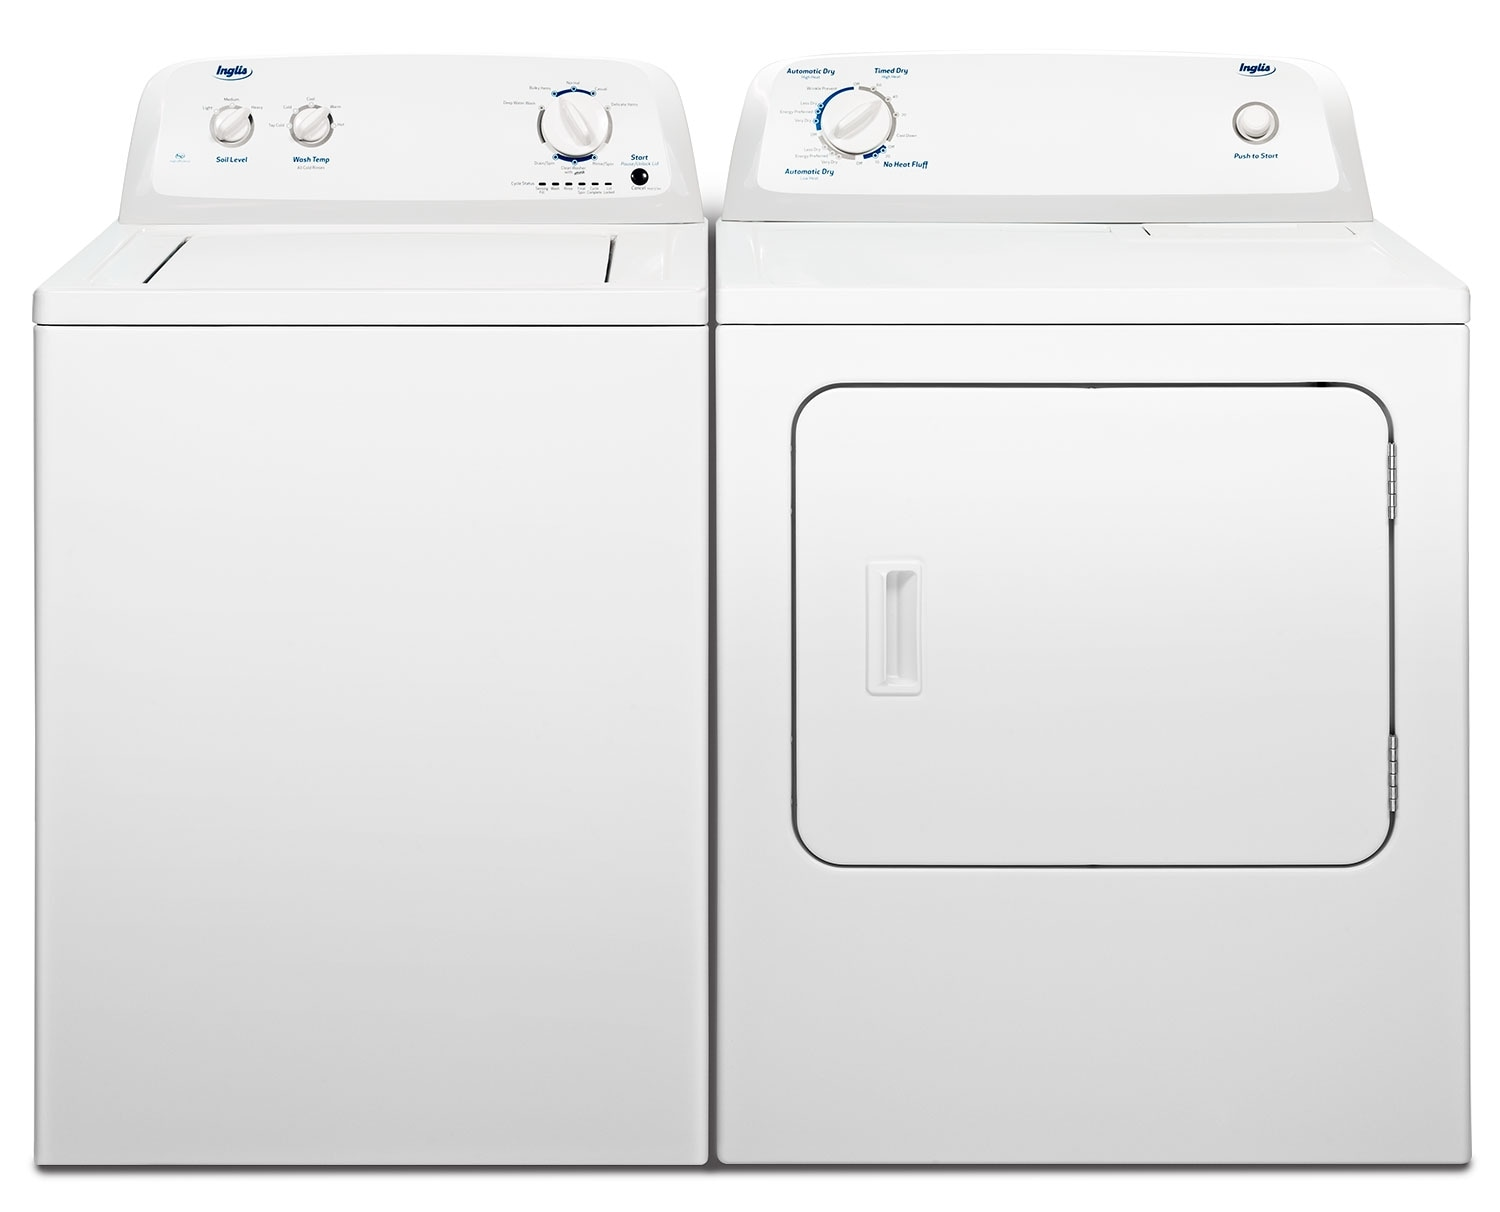 Beko washing machines at john lewis intergratedwashingmachinefo beko washing machines at john lewis buycottarizona Choice Image